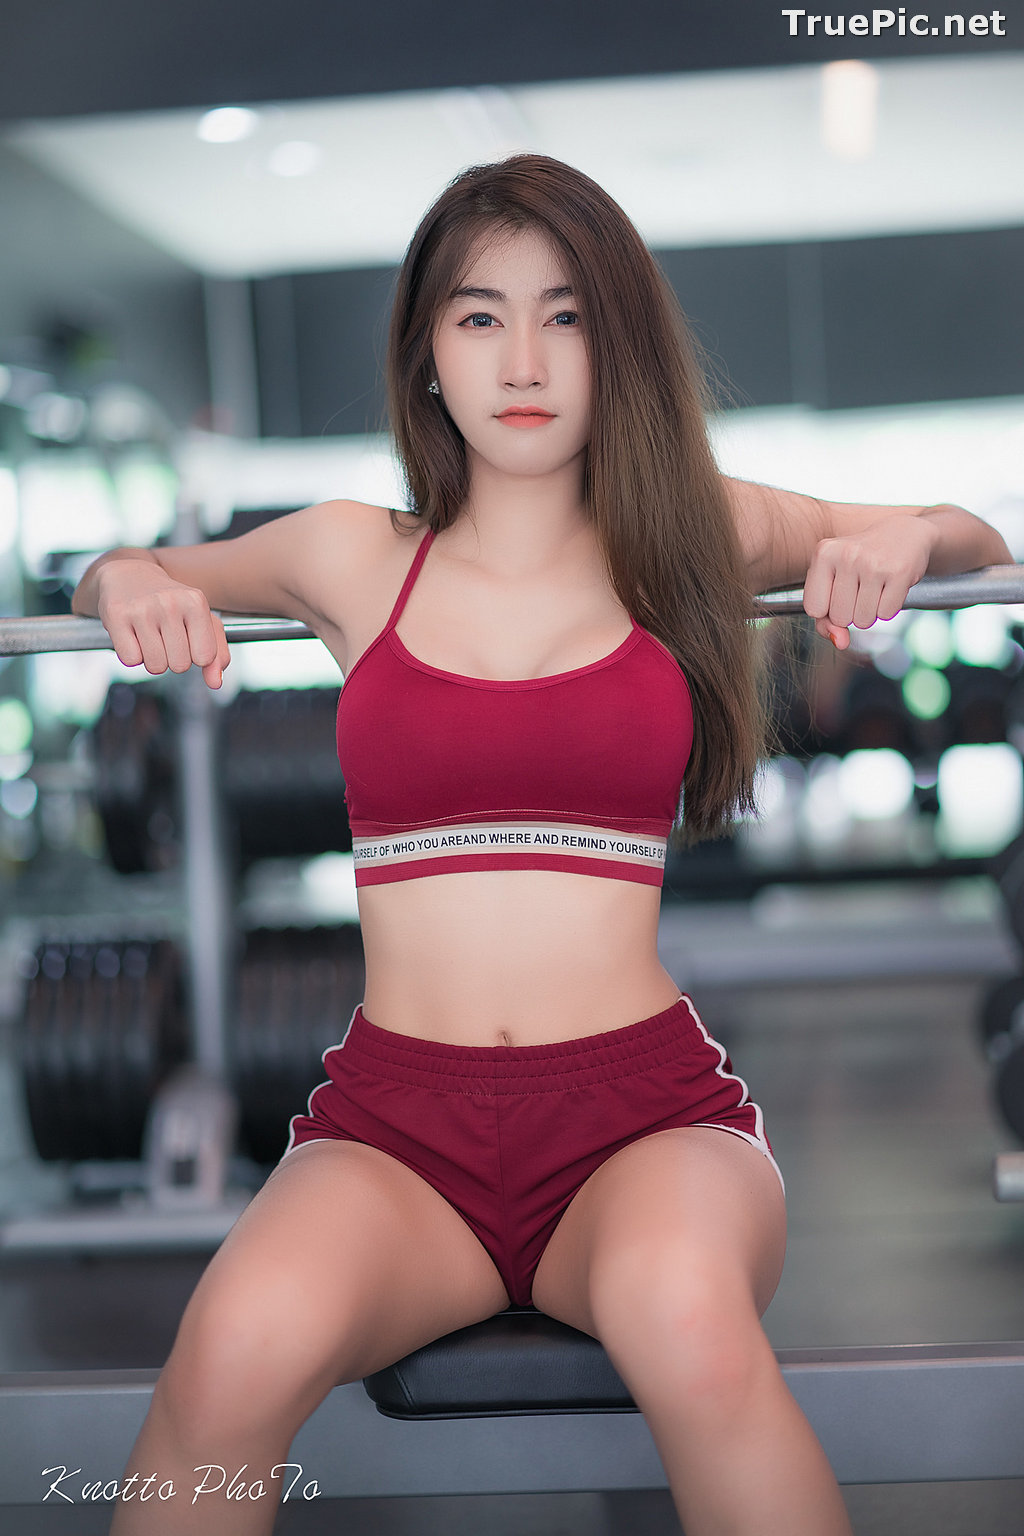 Image Thailand Hot Beauty Model - Nisa Khamarat - Red and Black Fitness Set - TruePic.net - Picture-5